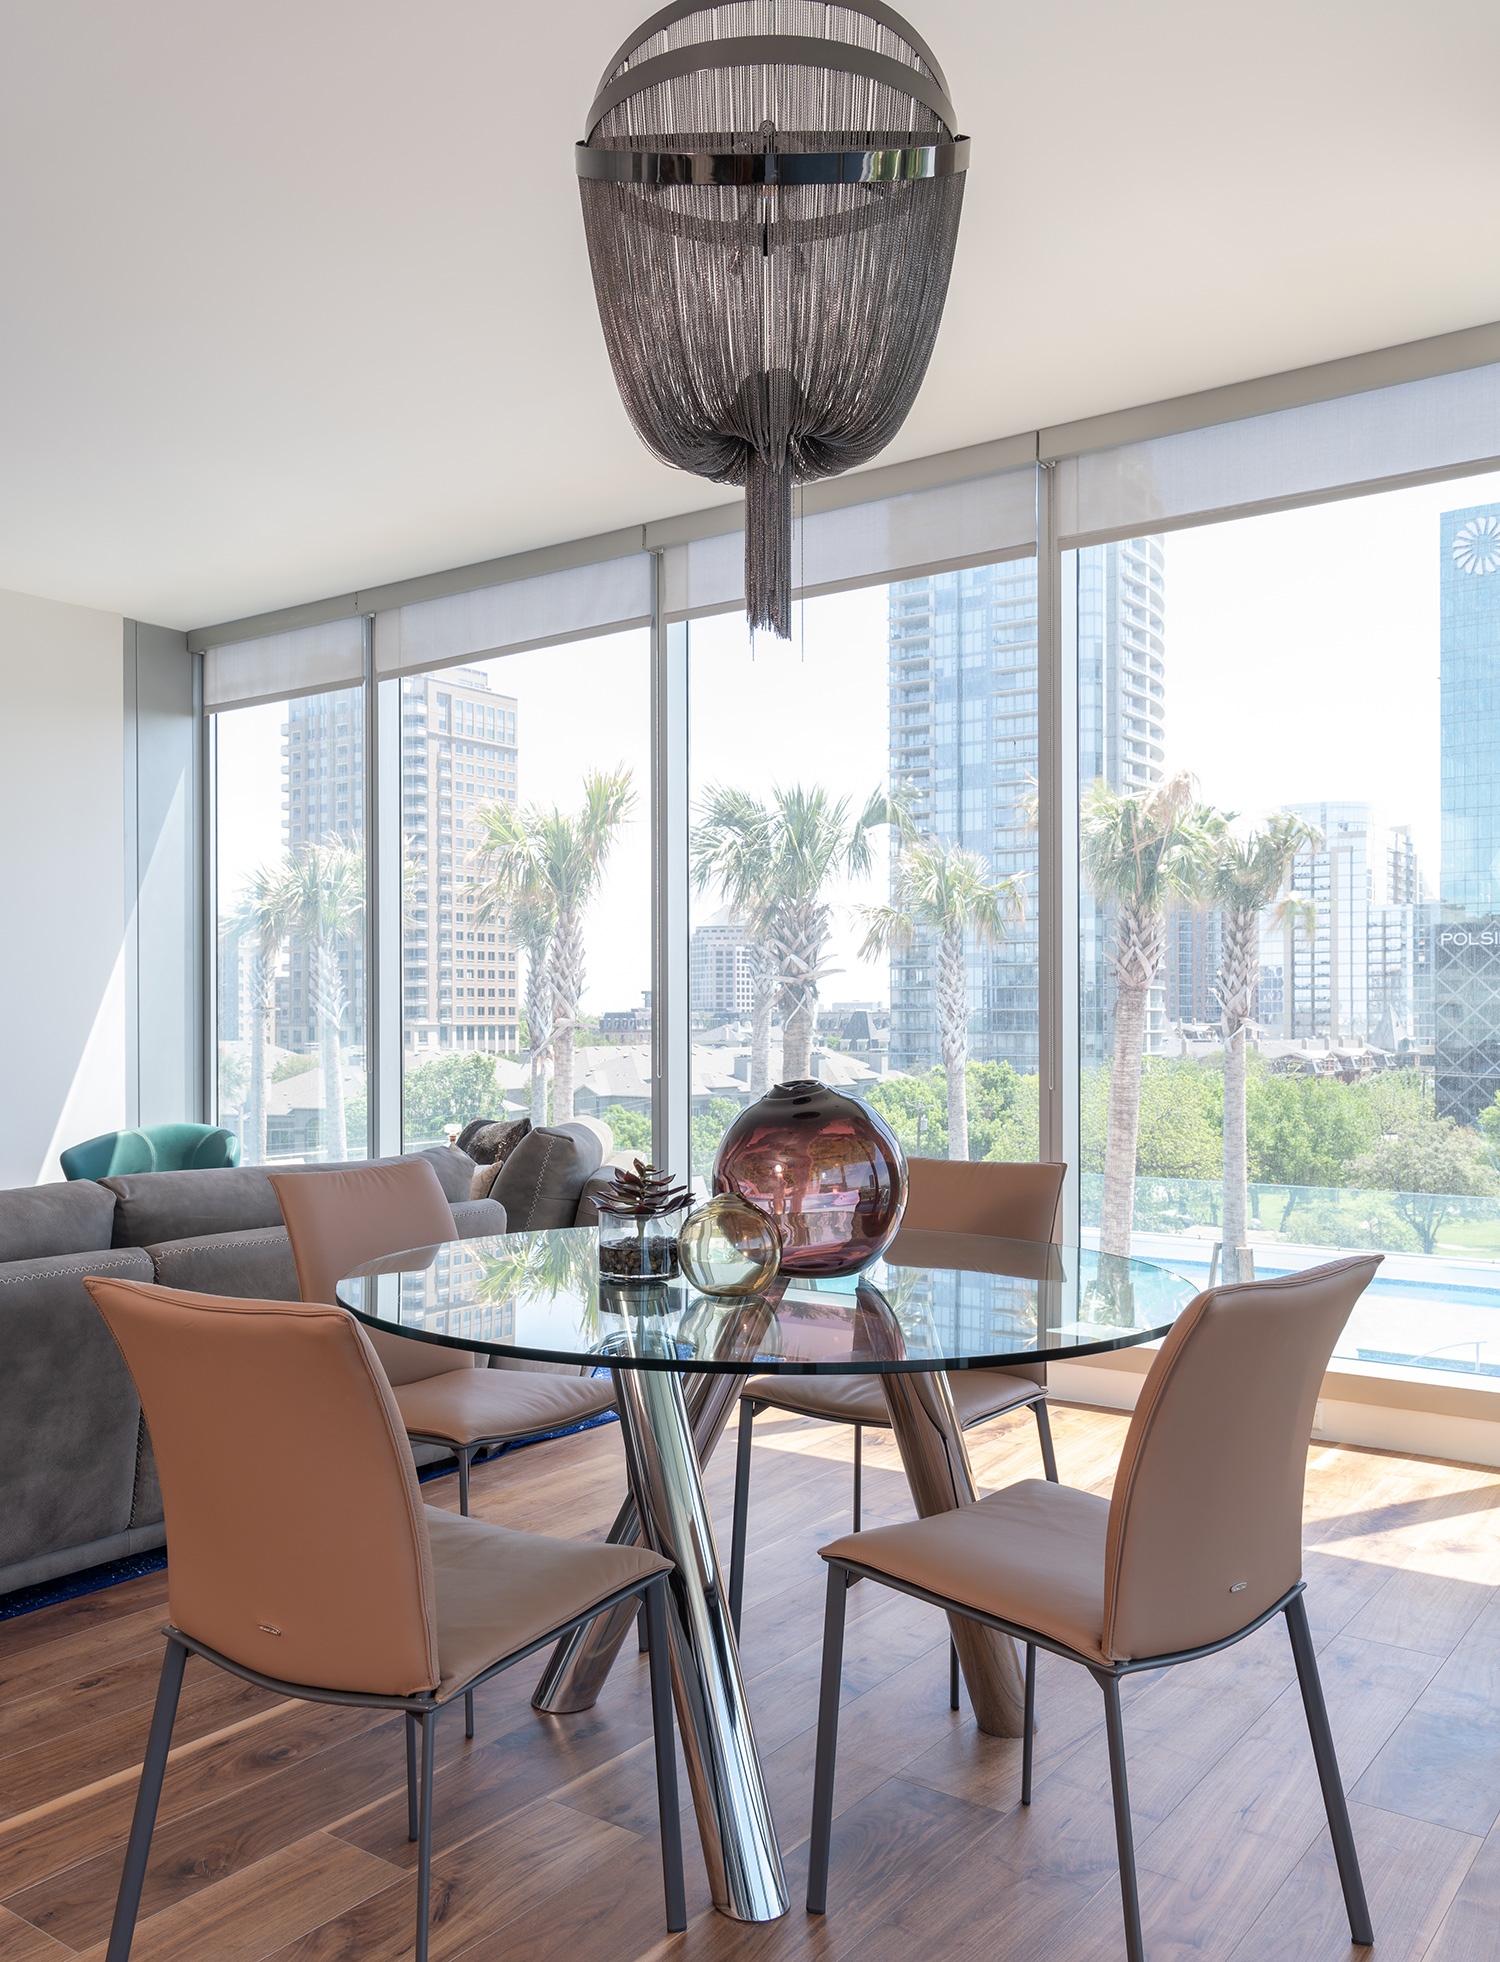 Living Large in a Luxury Landmark, Cantoni Dallas